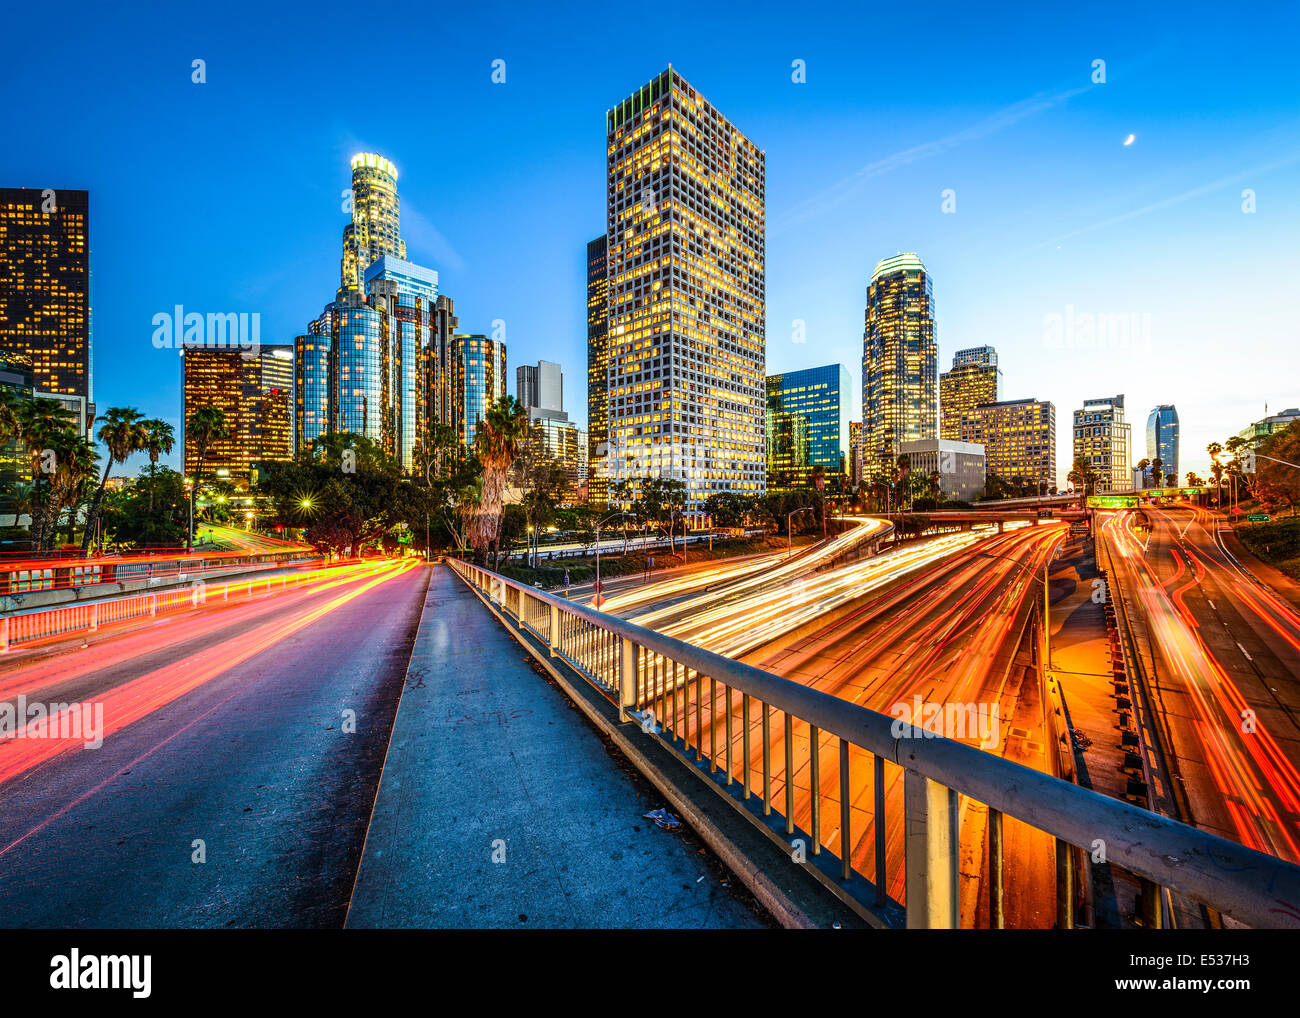 Los Angeles, Kalifornien, USA downtown Skyline bei Nacht. Stockbild